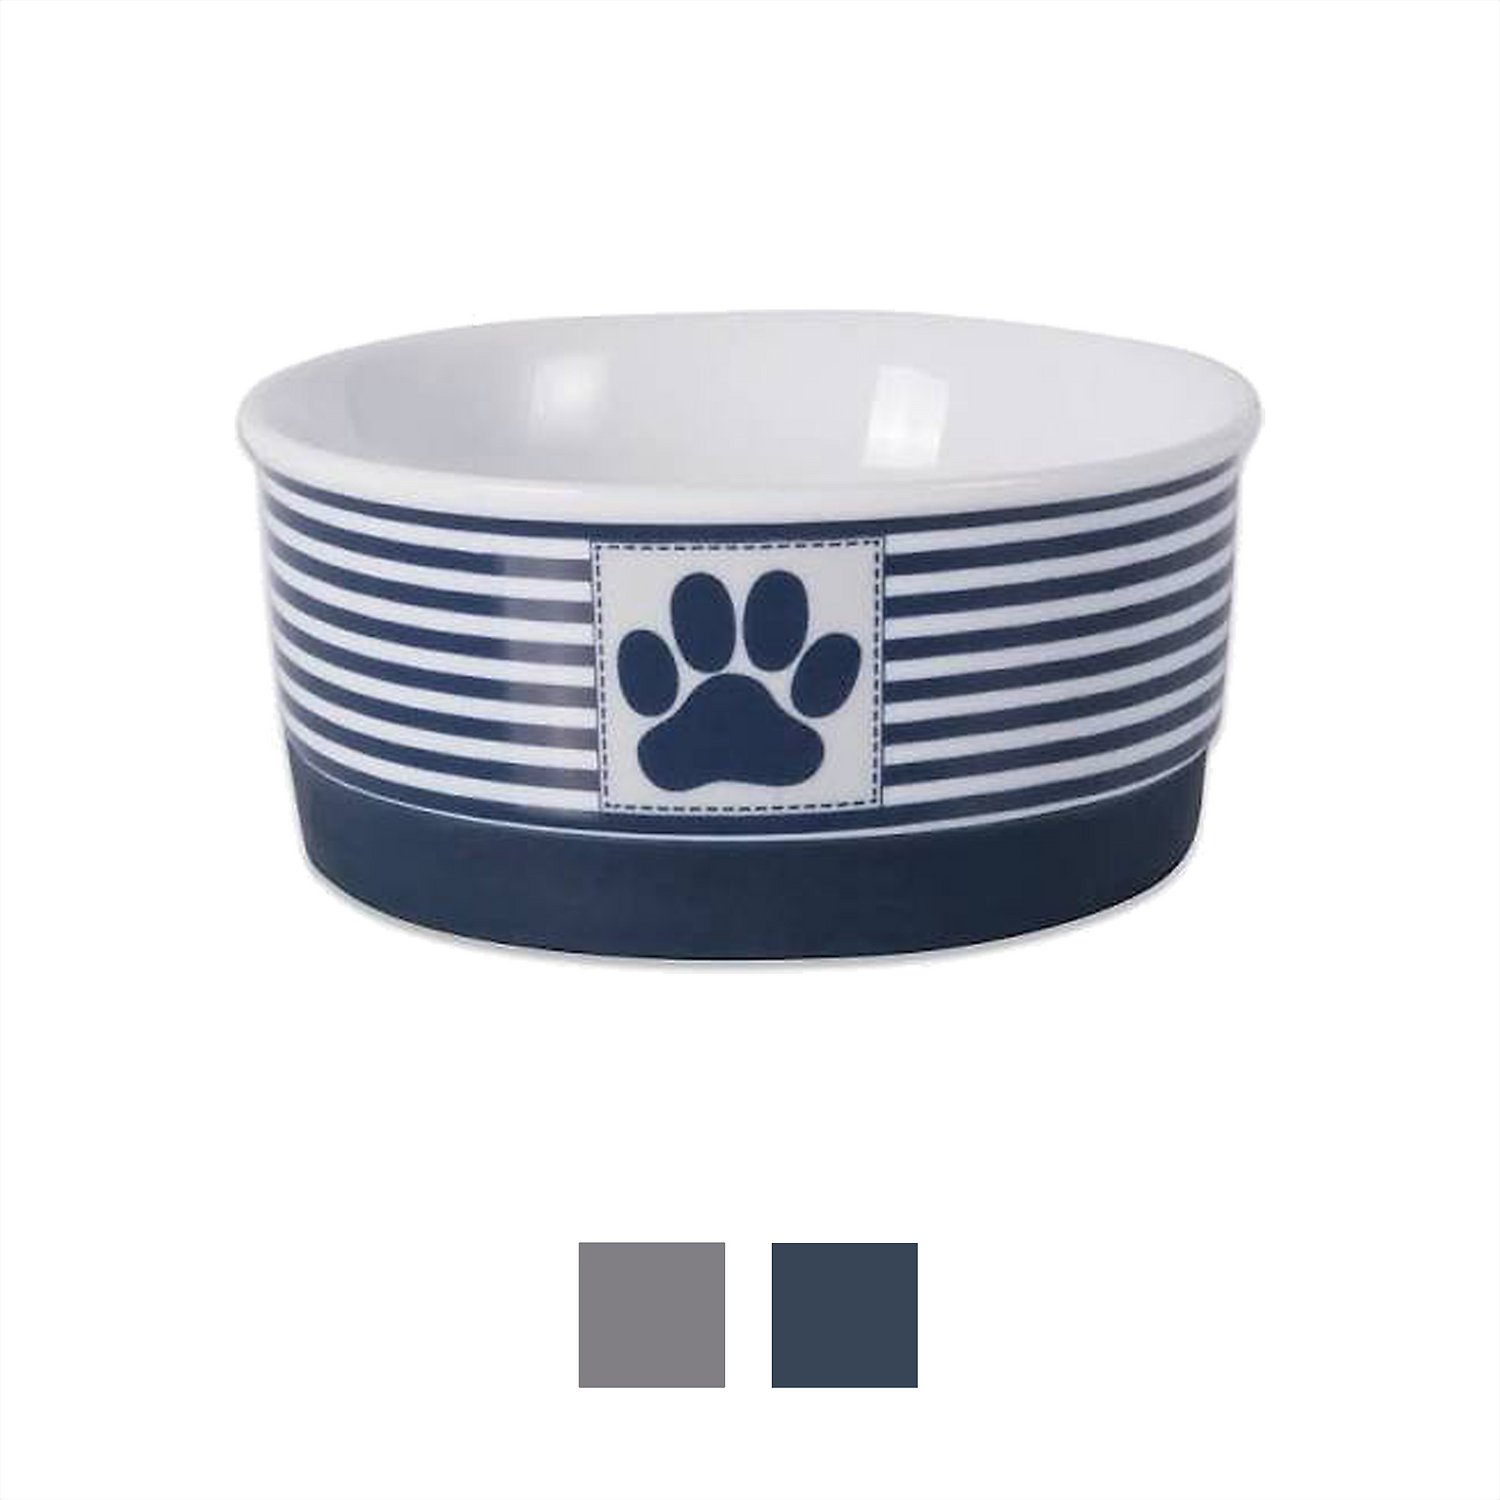 Beautiful Travel Bowl 2 In 1 Bowl Model For Dogs And Cats Fuss-dog Pet Supplies